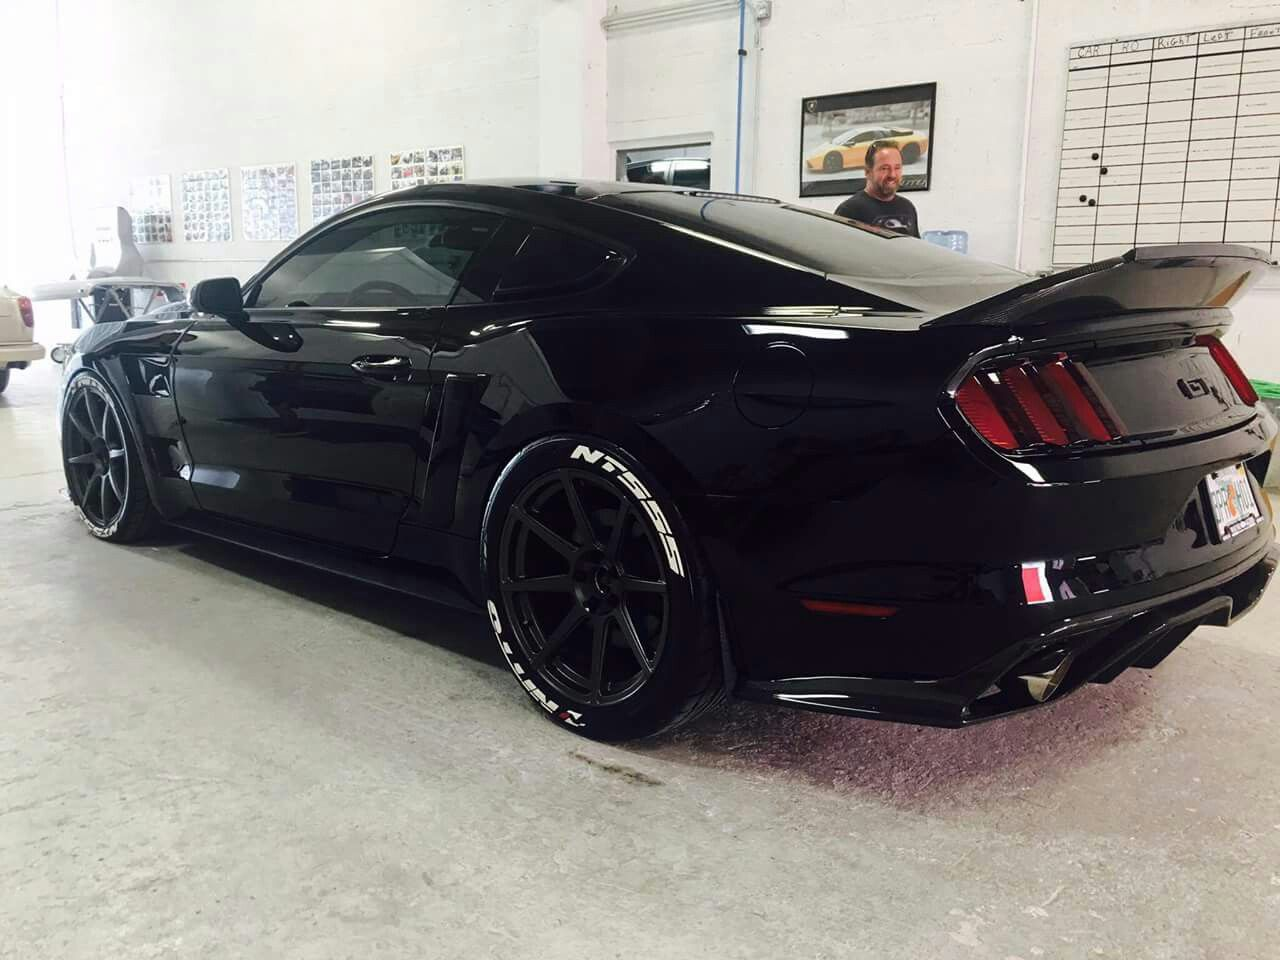 Mario Melgar S Black Mare S550 Mustang Gt Is Boasting A Ton Of Mods But Our Favorite Has To Be The Twin Precision Ford Mustang Car S550 Mustang Mustang Cars